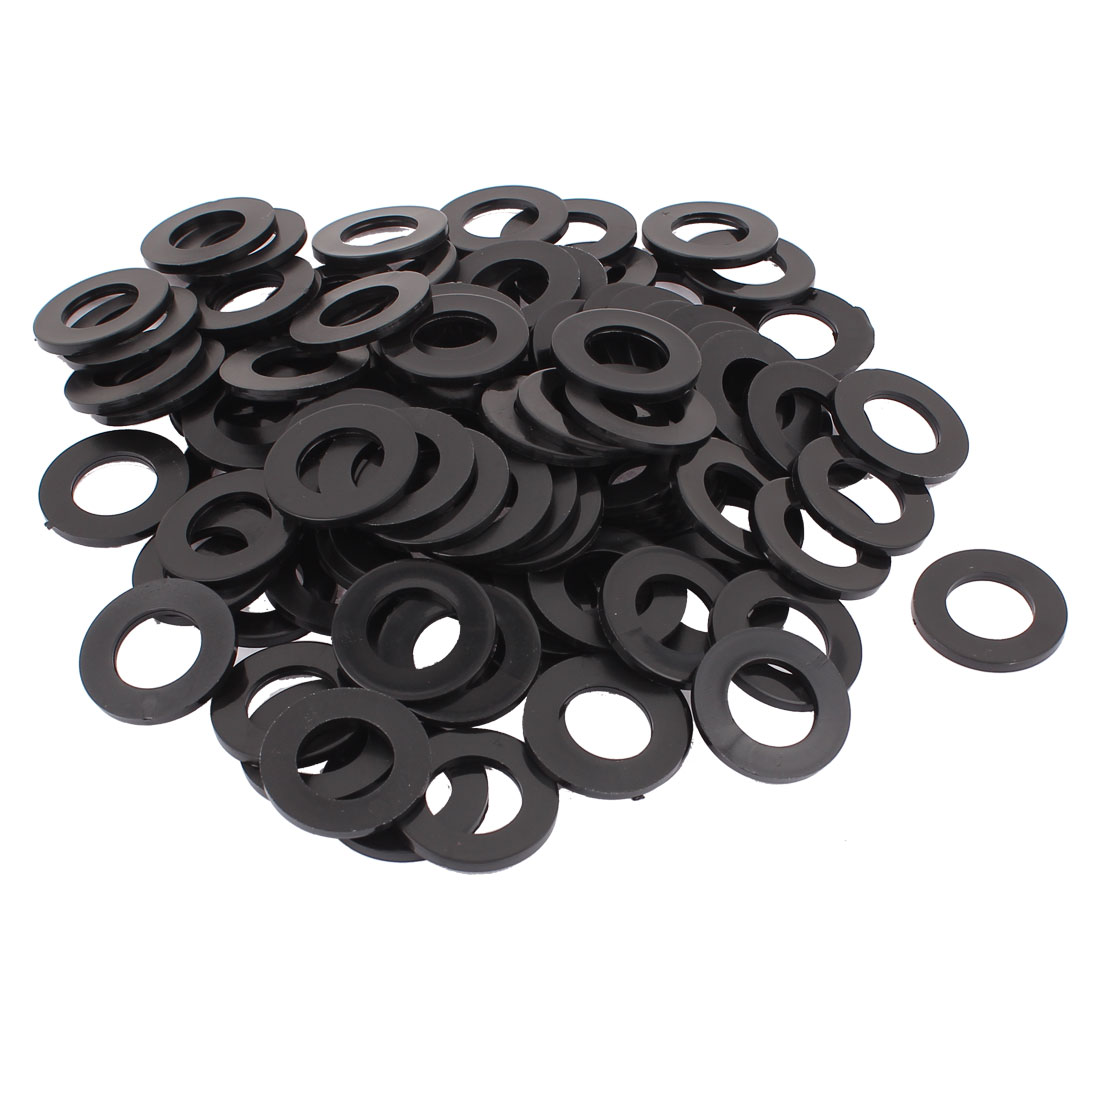 100pcs Round Insulation Nylon Flat Spacer Washer Gasket Ring 20 x 36 x 3mm Black